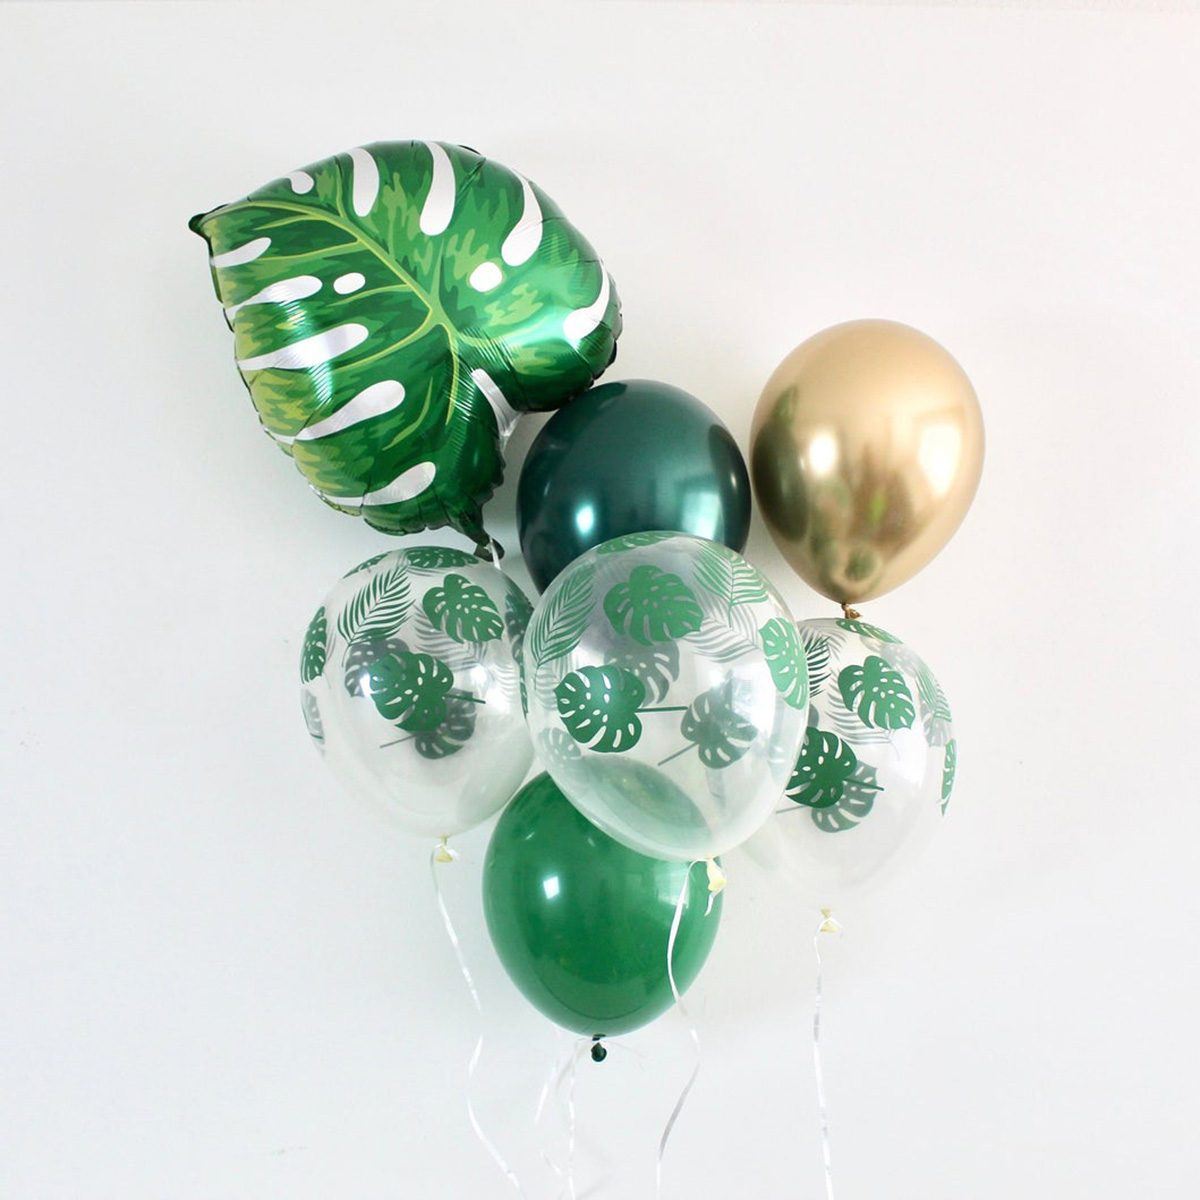 Palm Leaf Green Forest Chrome Gold Latex Balloons Wild One Party Jungle Party Safari Party Tropical Party Palm Leaf Balloons Palm Decor